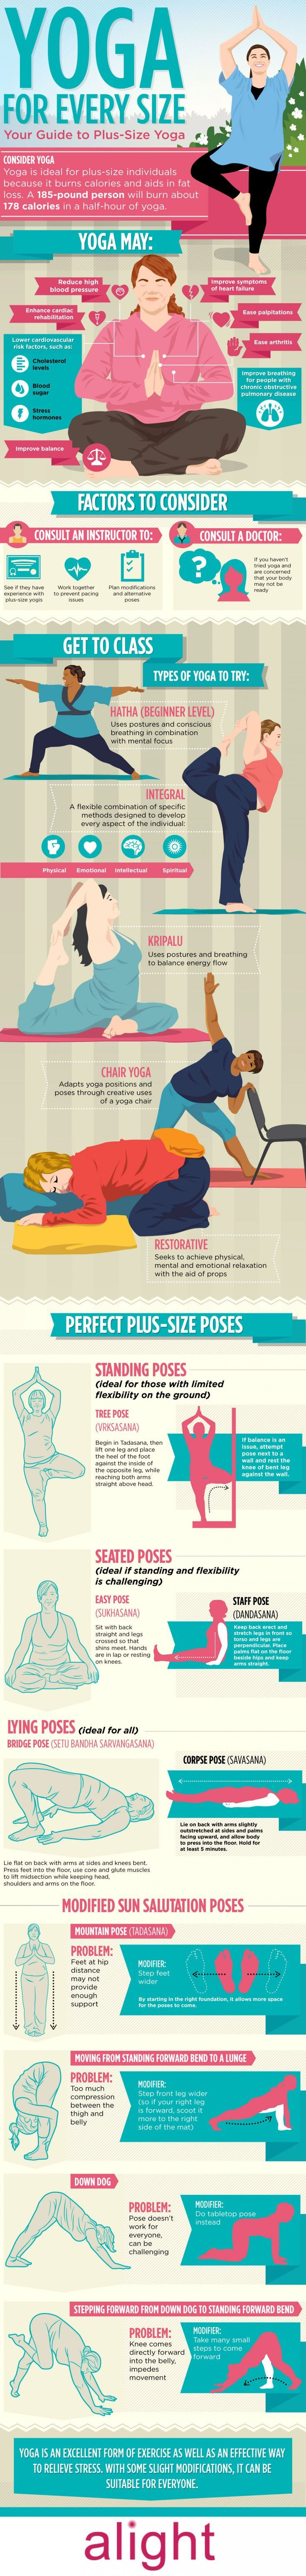 25+ best ideas about Lose weight running on Pinterest ...